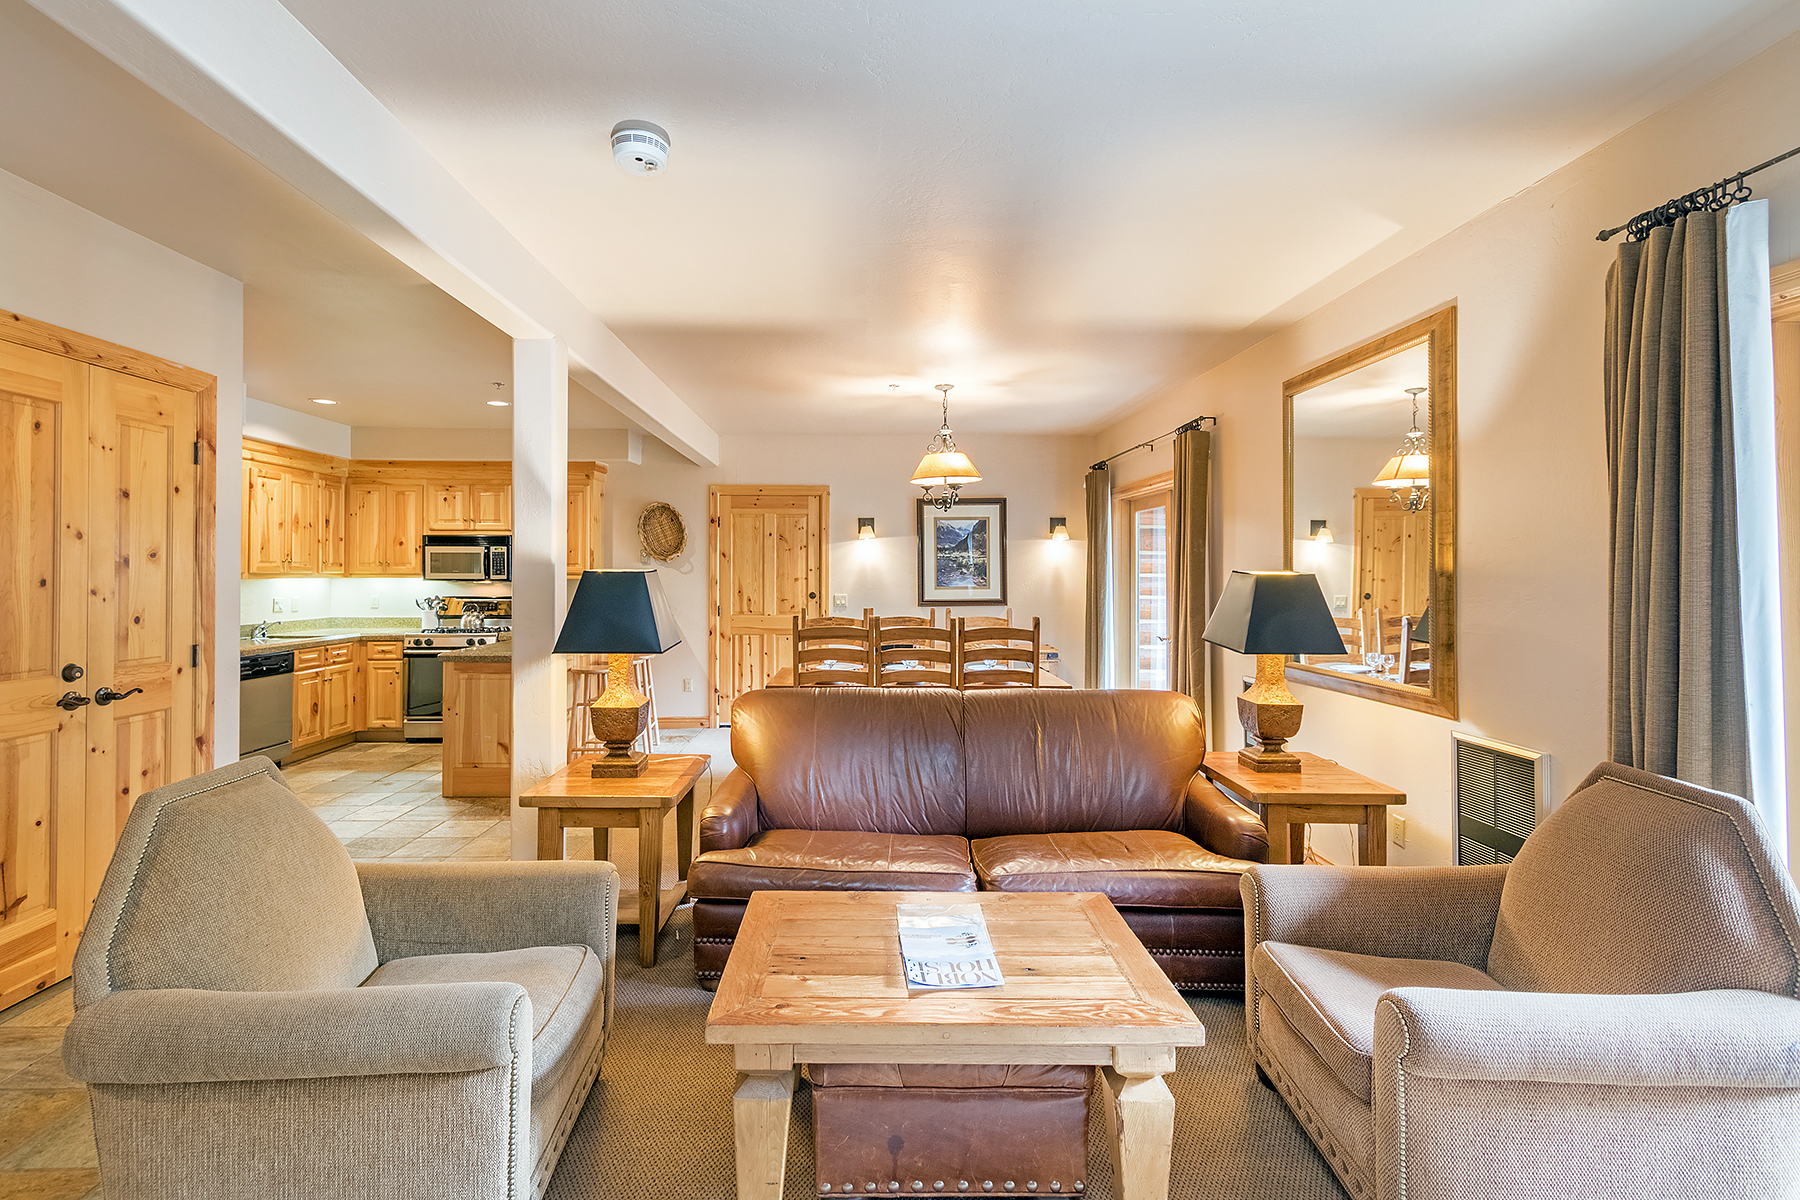 Appartement en copropriété pour l Vente à 4114/4116 Mountain Lodge 457 Mountain Village Blvd, Summit Suite 4114/4116, Telluride, Colorado, 81435 États-Unis